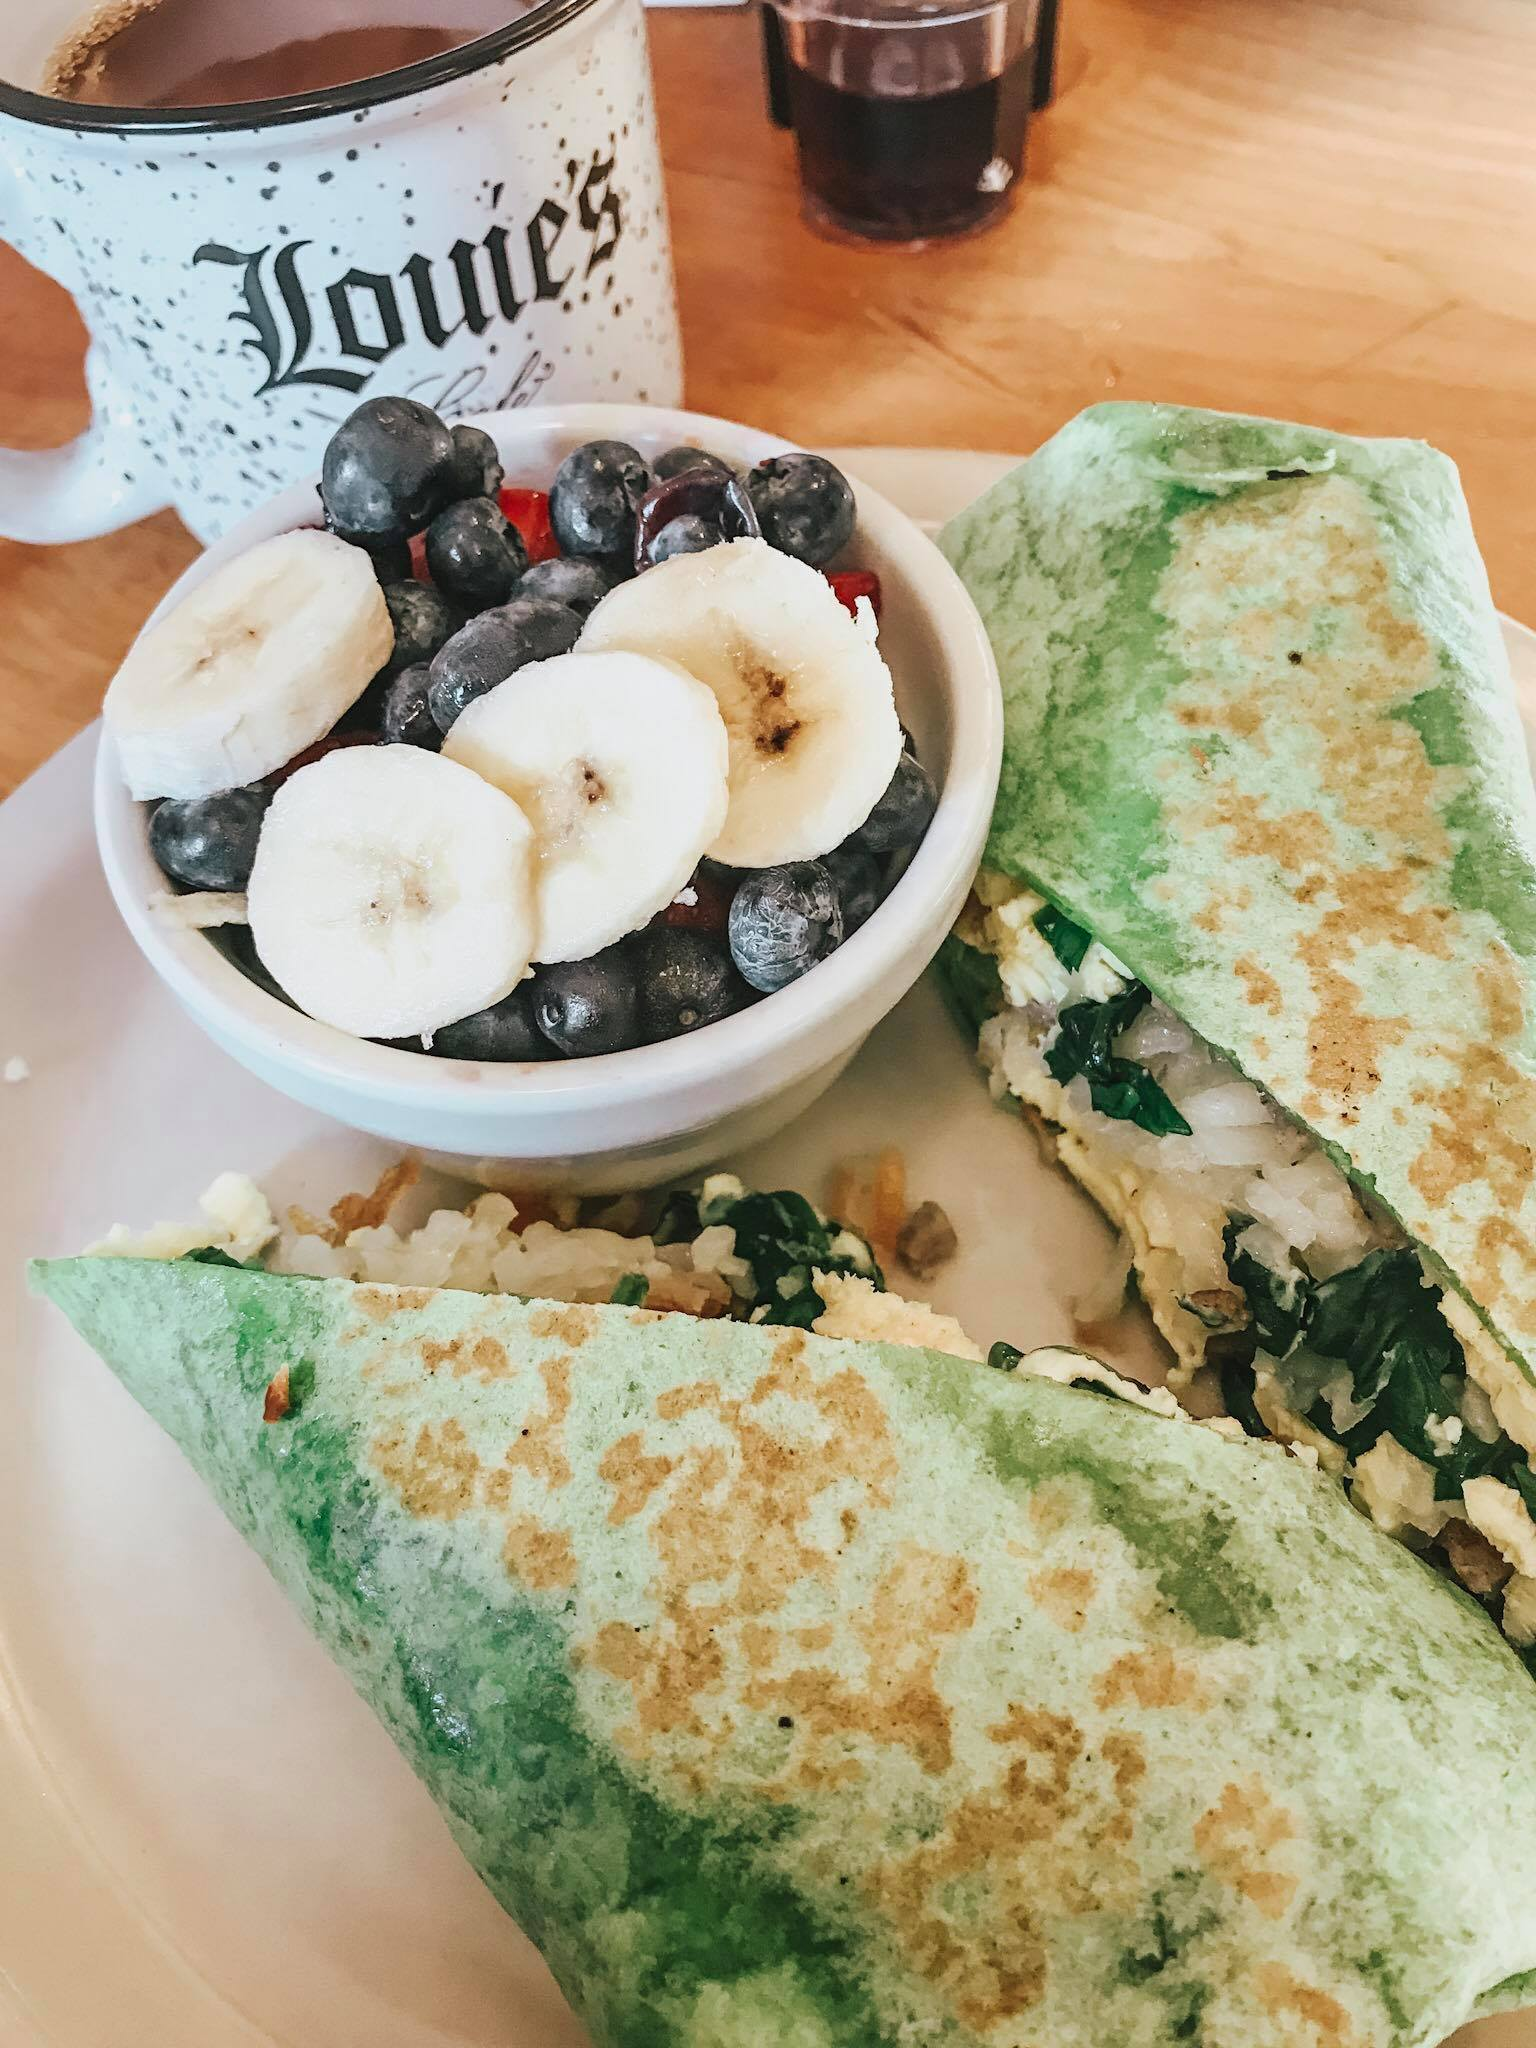 The Delicious breakfast wrap at Louie's Cafe